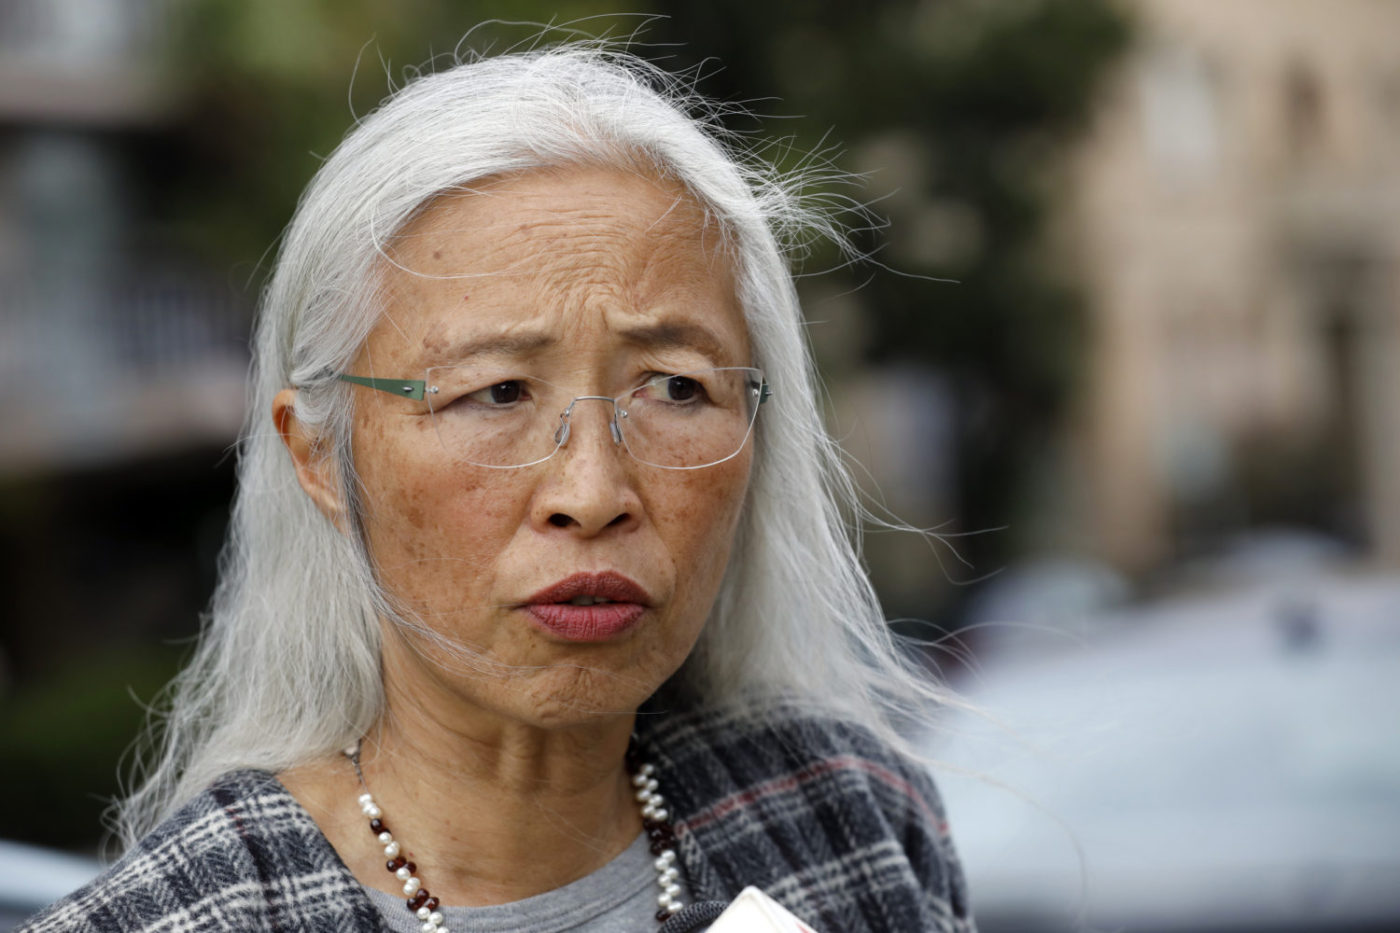 Attorney-Yolanda-Huang-describes-poor-treatment-of-women-in-Santa-Rita-Jail-010418-by-Laura-A.-Oda-Bay-Area-News-Group-1400x933, Never out in the sun: City fights order that SF County Jail prisoners have access to sunlight, Local News & Views